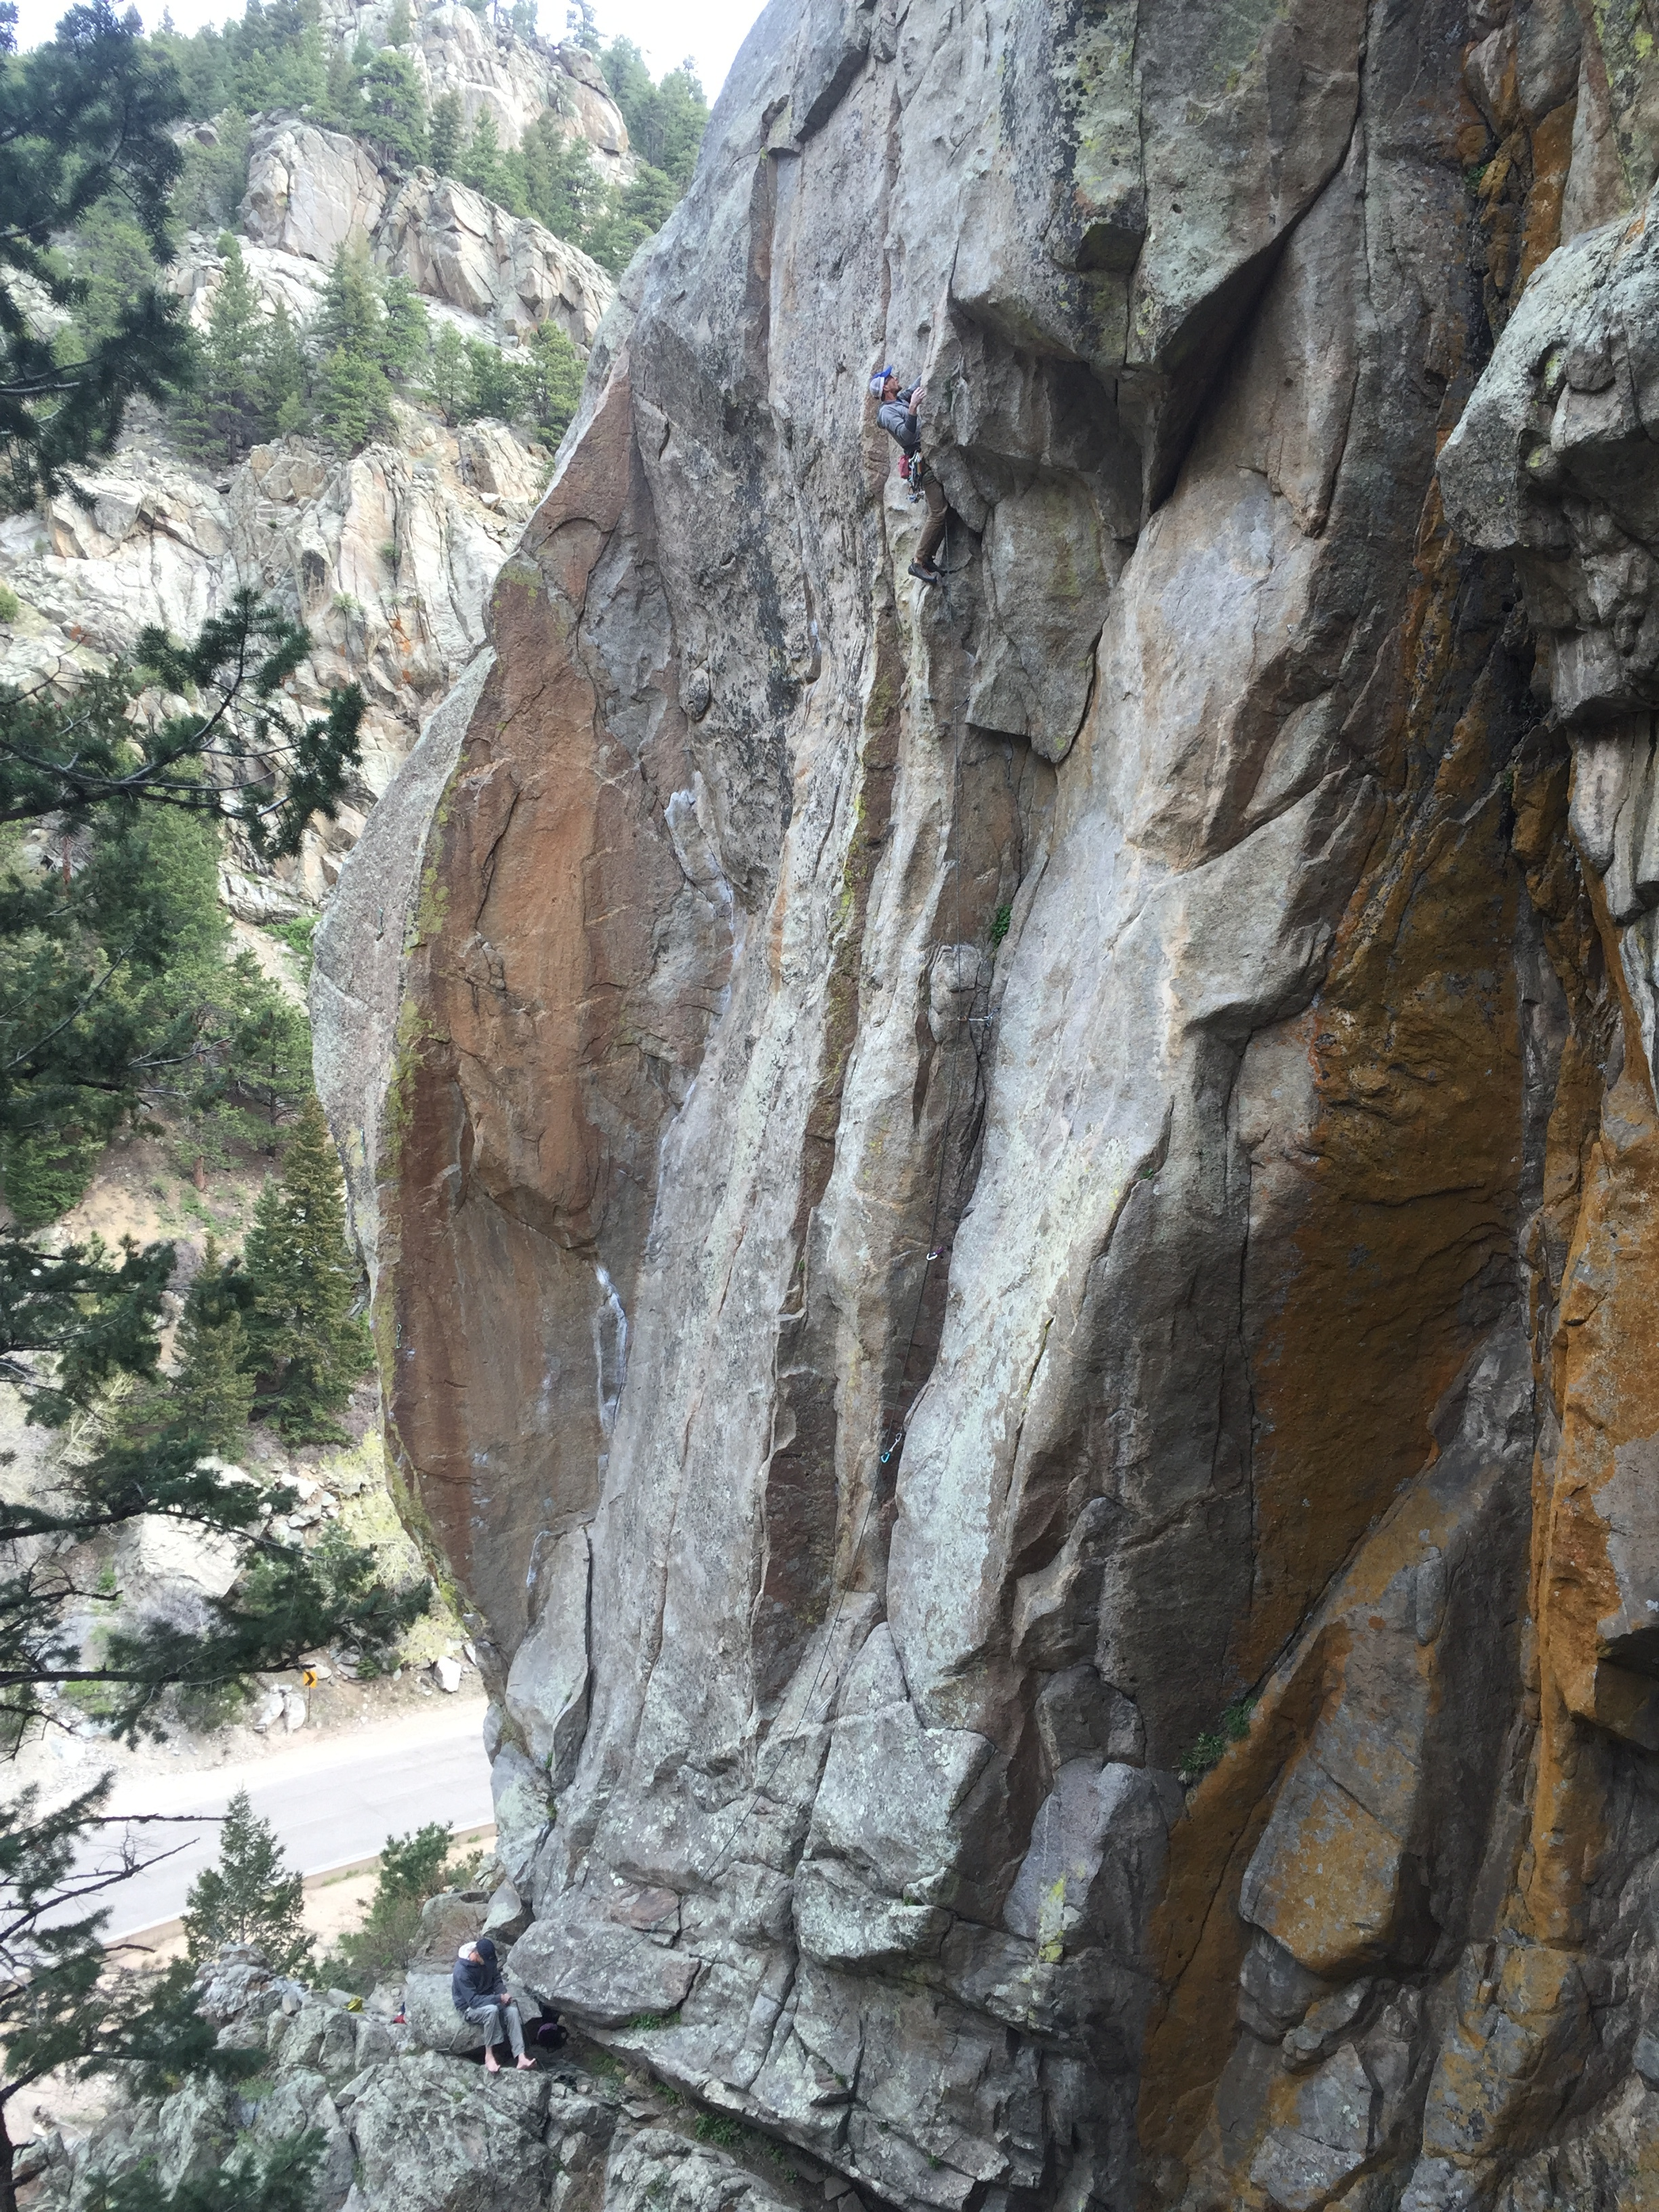 Ben Raiche and Roger Briggs on West Crack, Bell Buttress